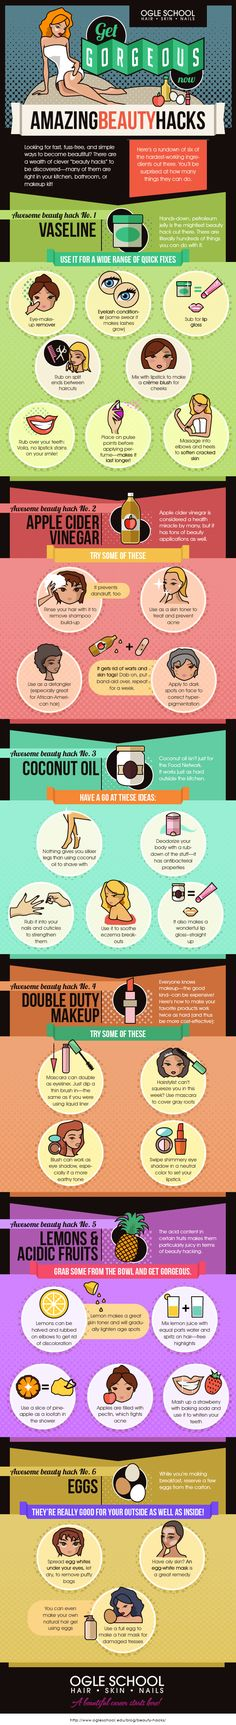 Amazing... I've always had coconut oil and didn't know what to do with it...